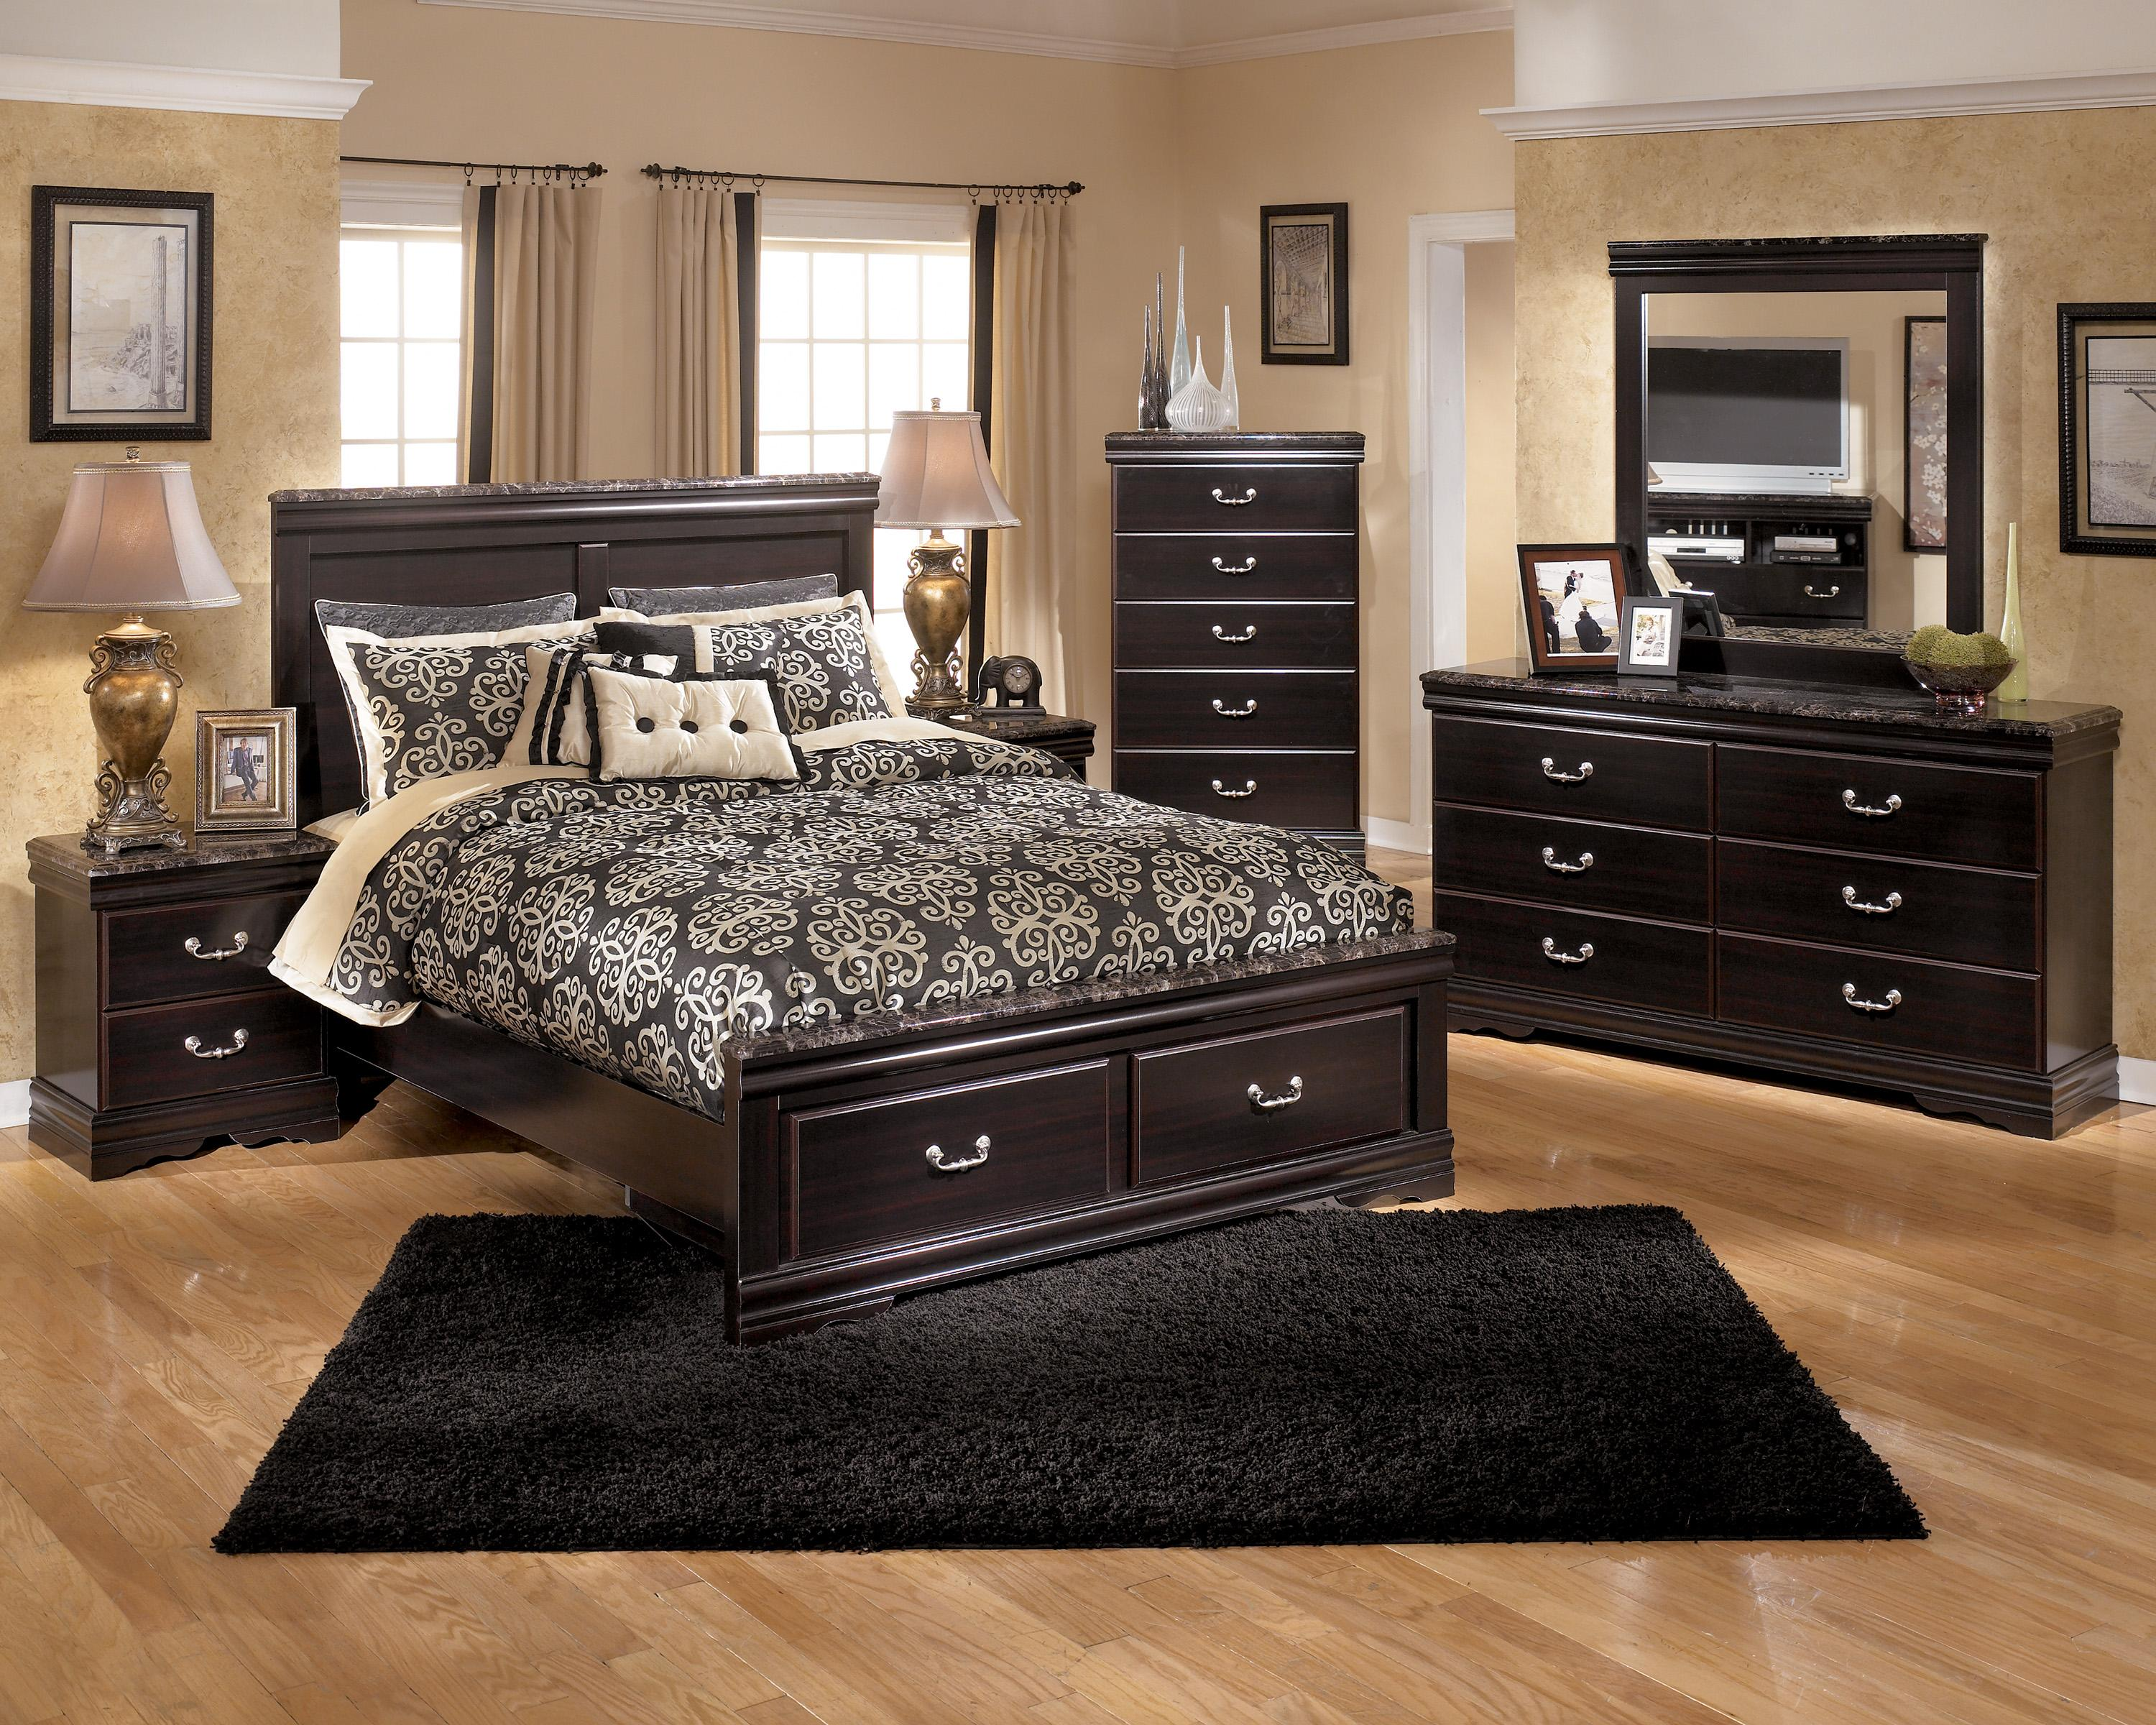 Signature Design by Ashley Esmarelda Queen Bedroom Group - Item Number: B179 Q Bedroom Group 2